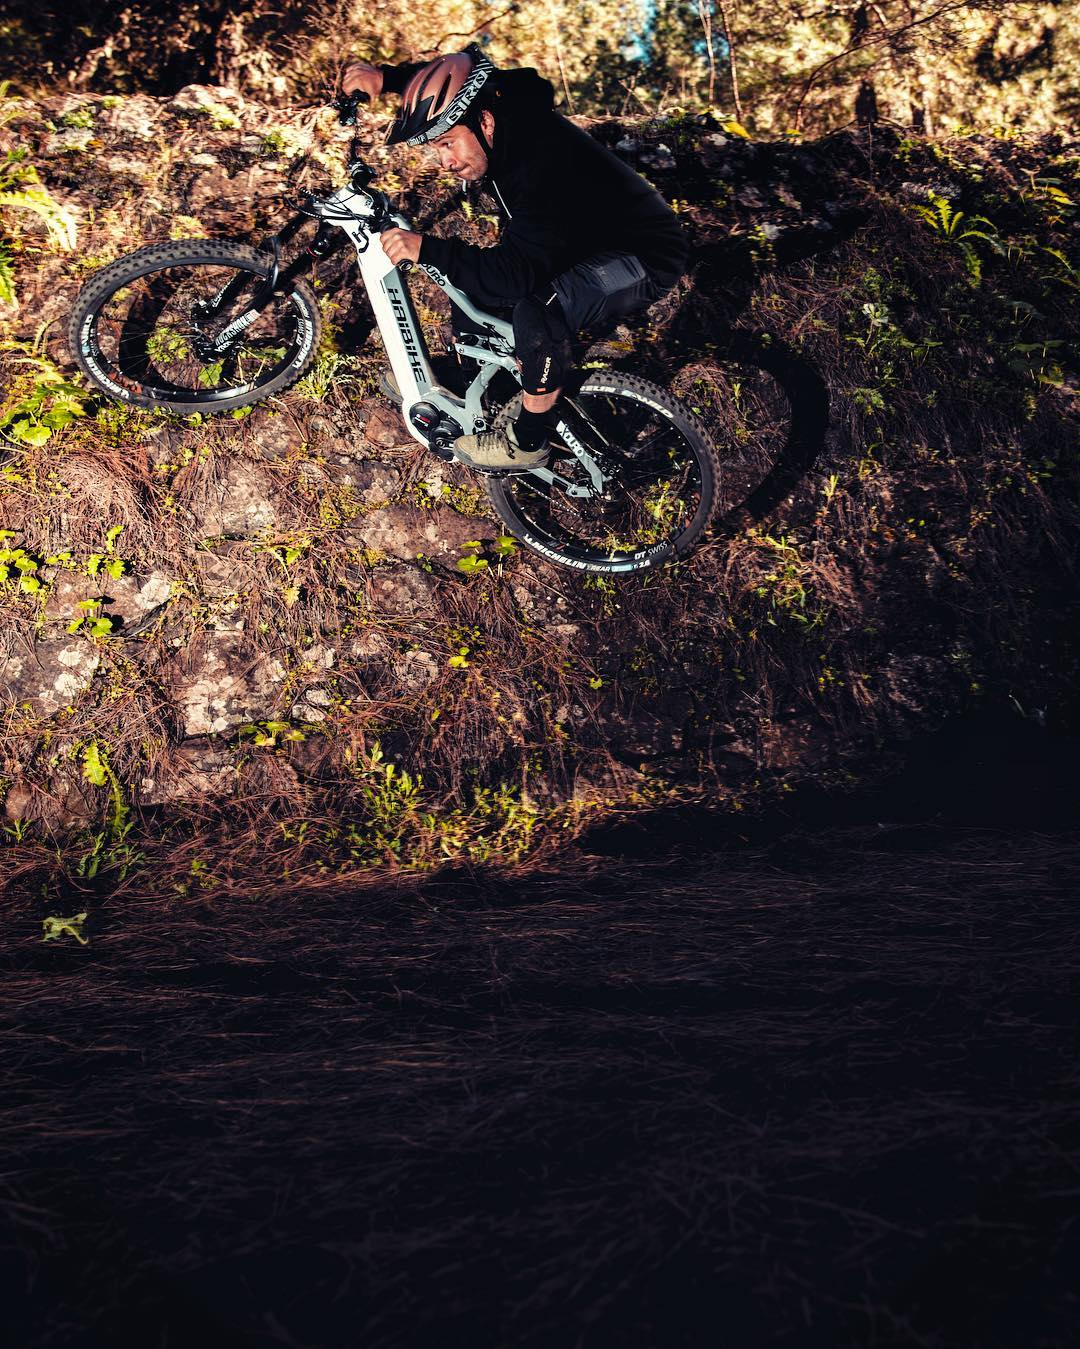 Getting experimental on a recent photoshoot with @yannickgranieri ! #haibike #photoshoot #emtb #enduro